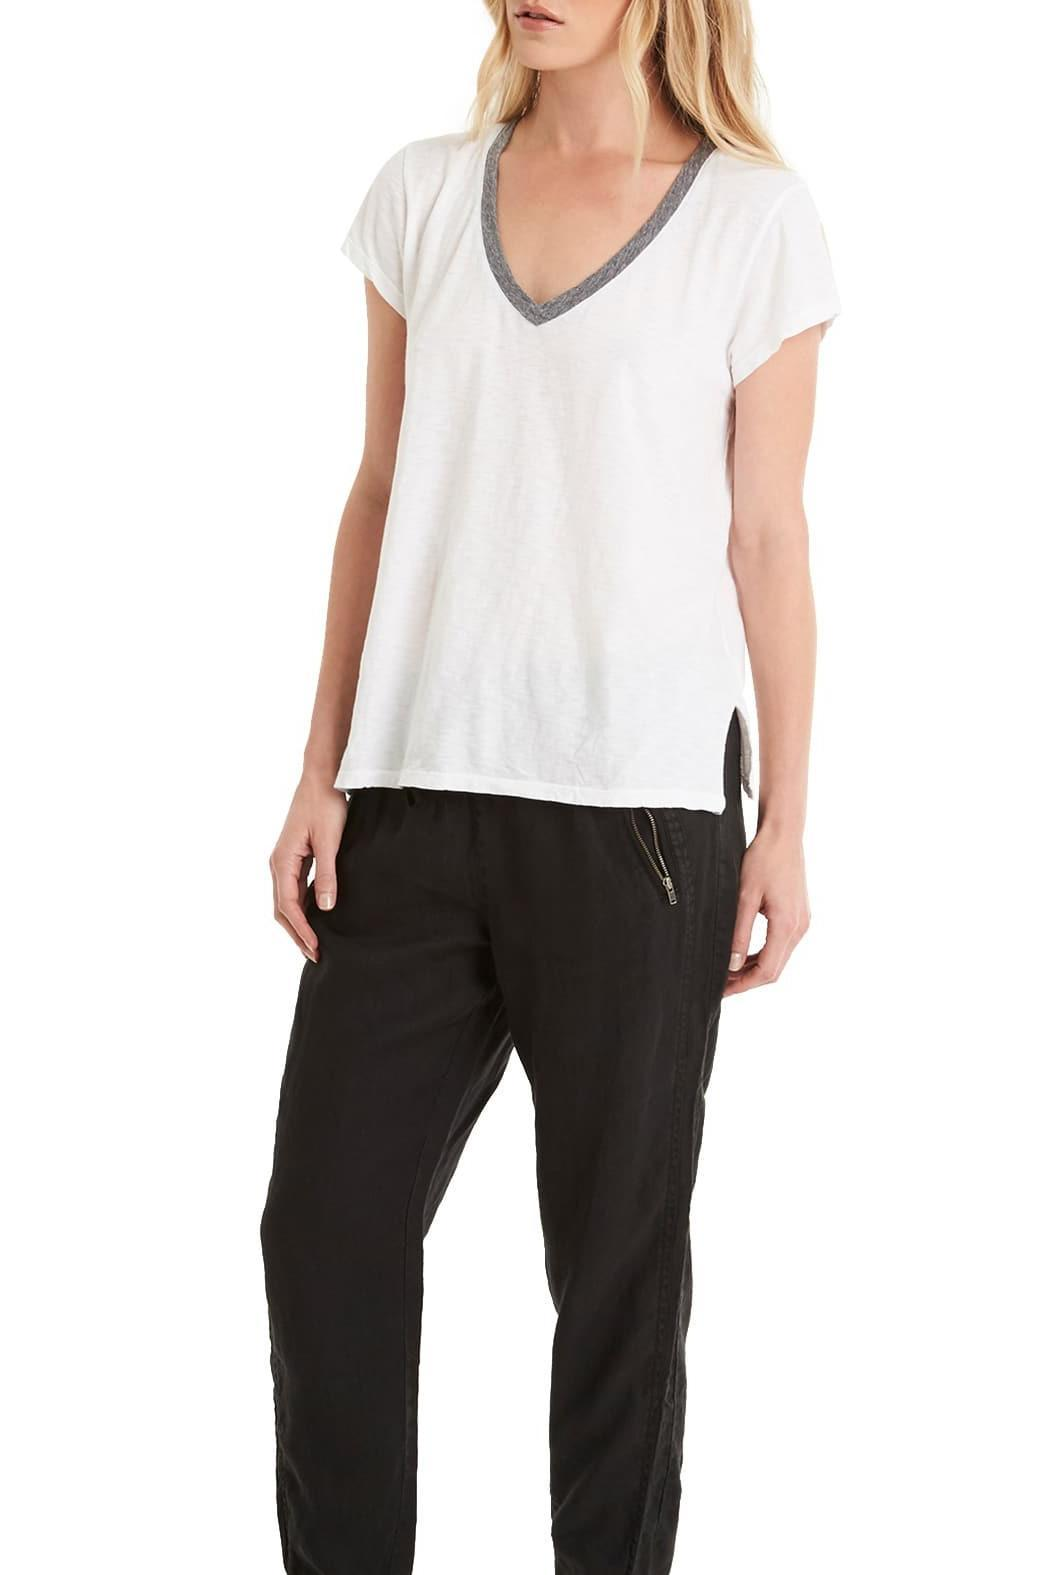 Michael Stars Contrast V Neck Tee - Side Cropped Image